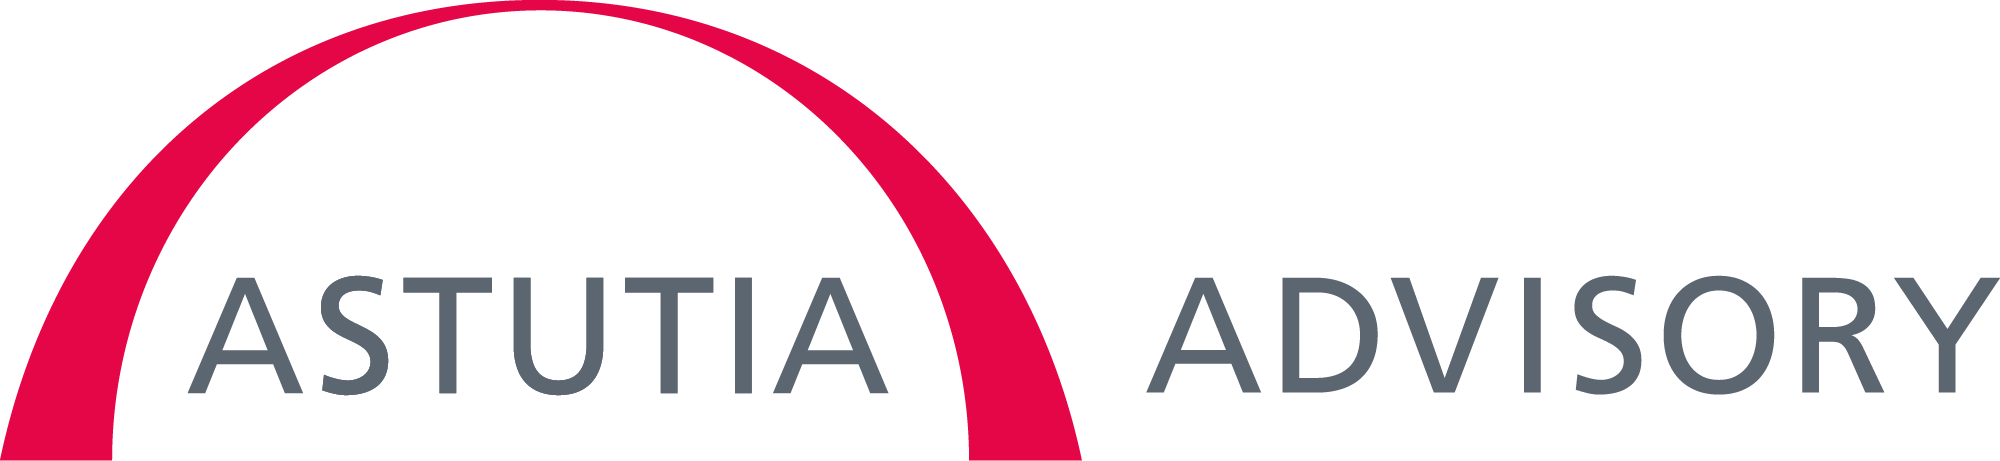 Logo of ASTUTIA Advisory GmbH